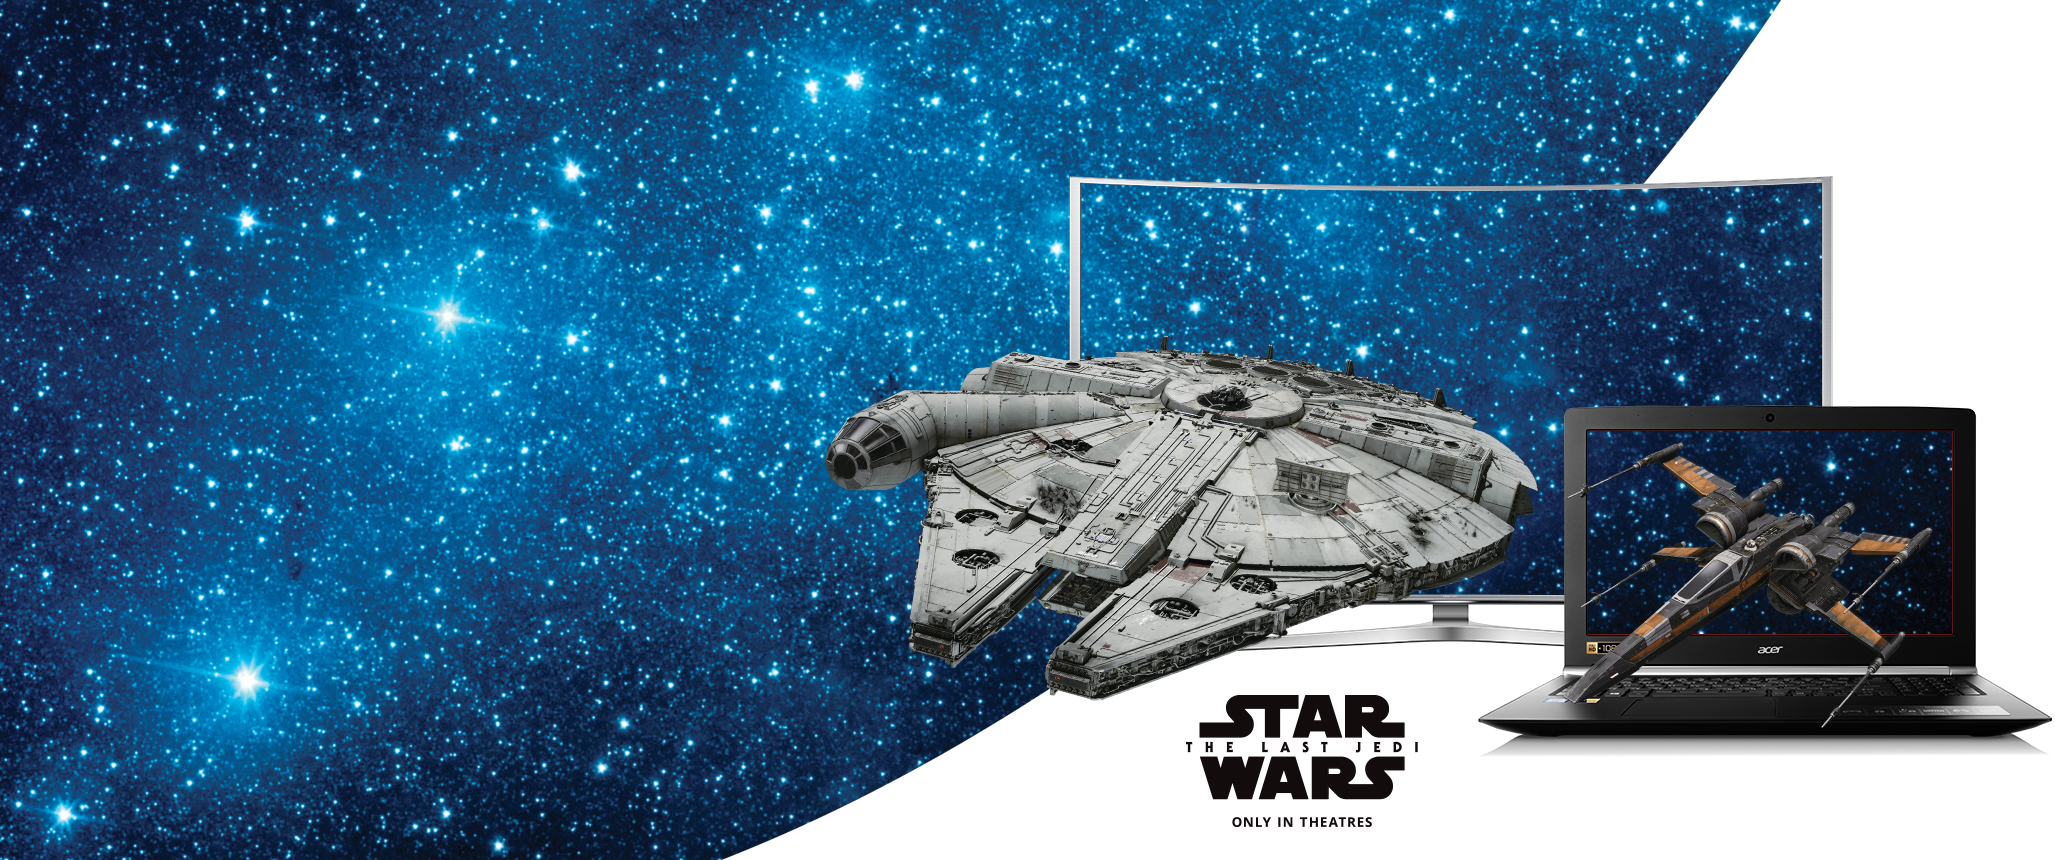 StarWars-BlackFriday-Banner@2x.jpg